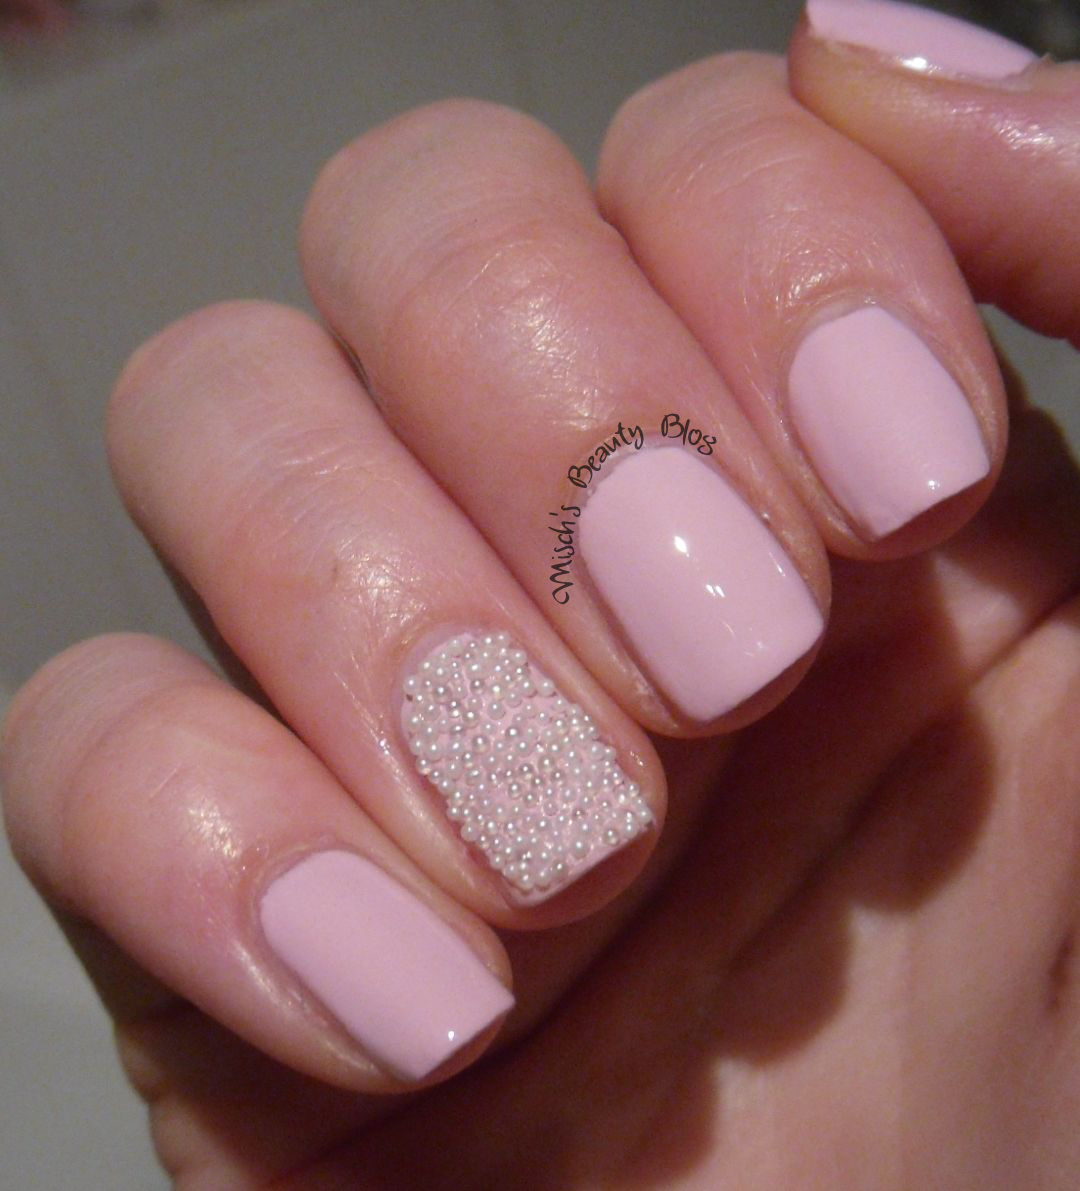 Cotton Candy Nail Color: Not A Chip On The Nail